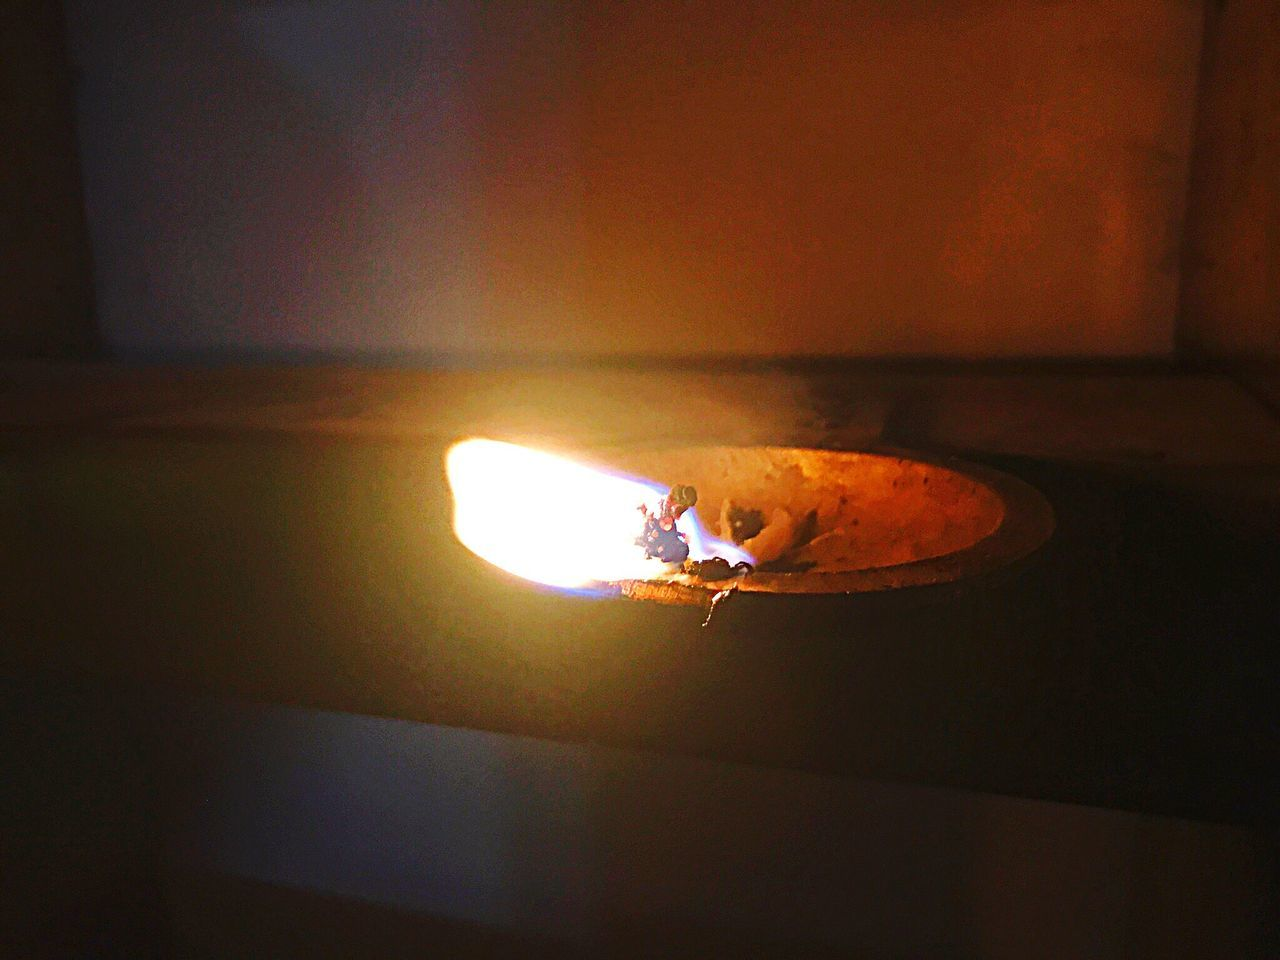 burning, flame, heat - temperature, glowing, indoors, illuminated, real people, men, one person, night, close-up, diya - oil lamp, people